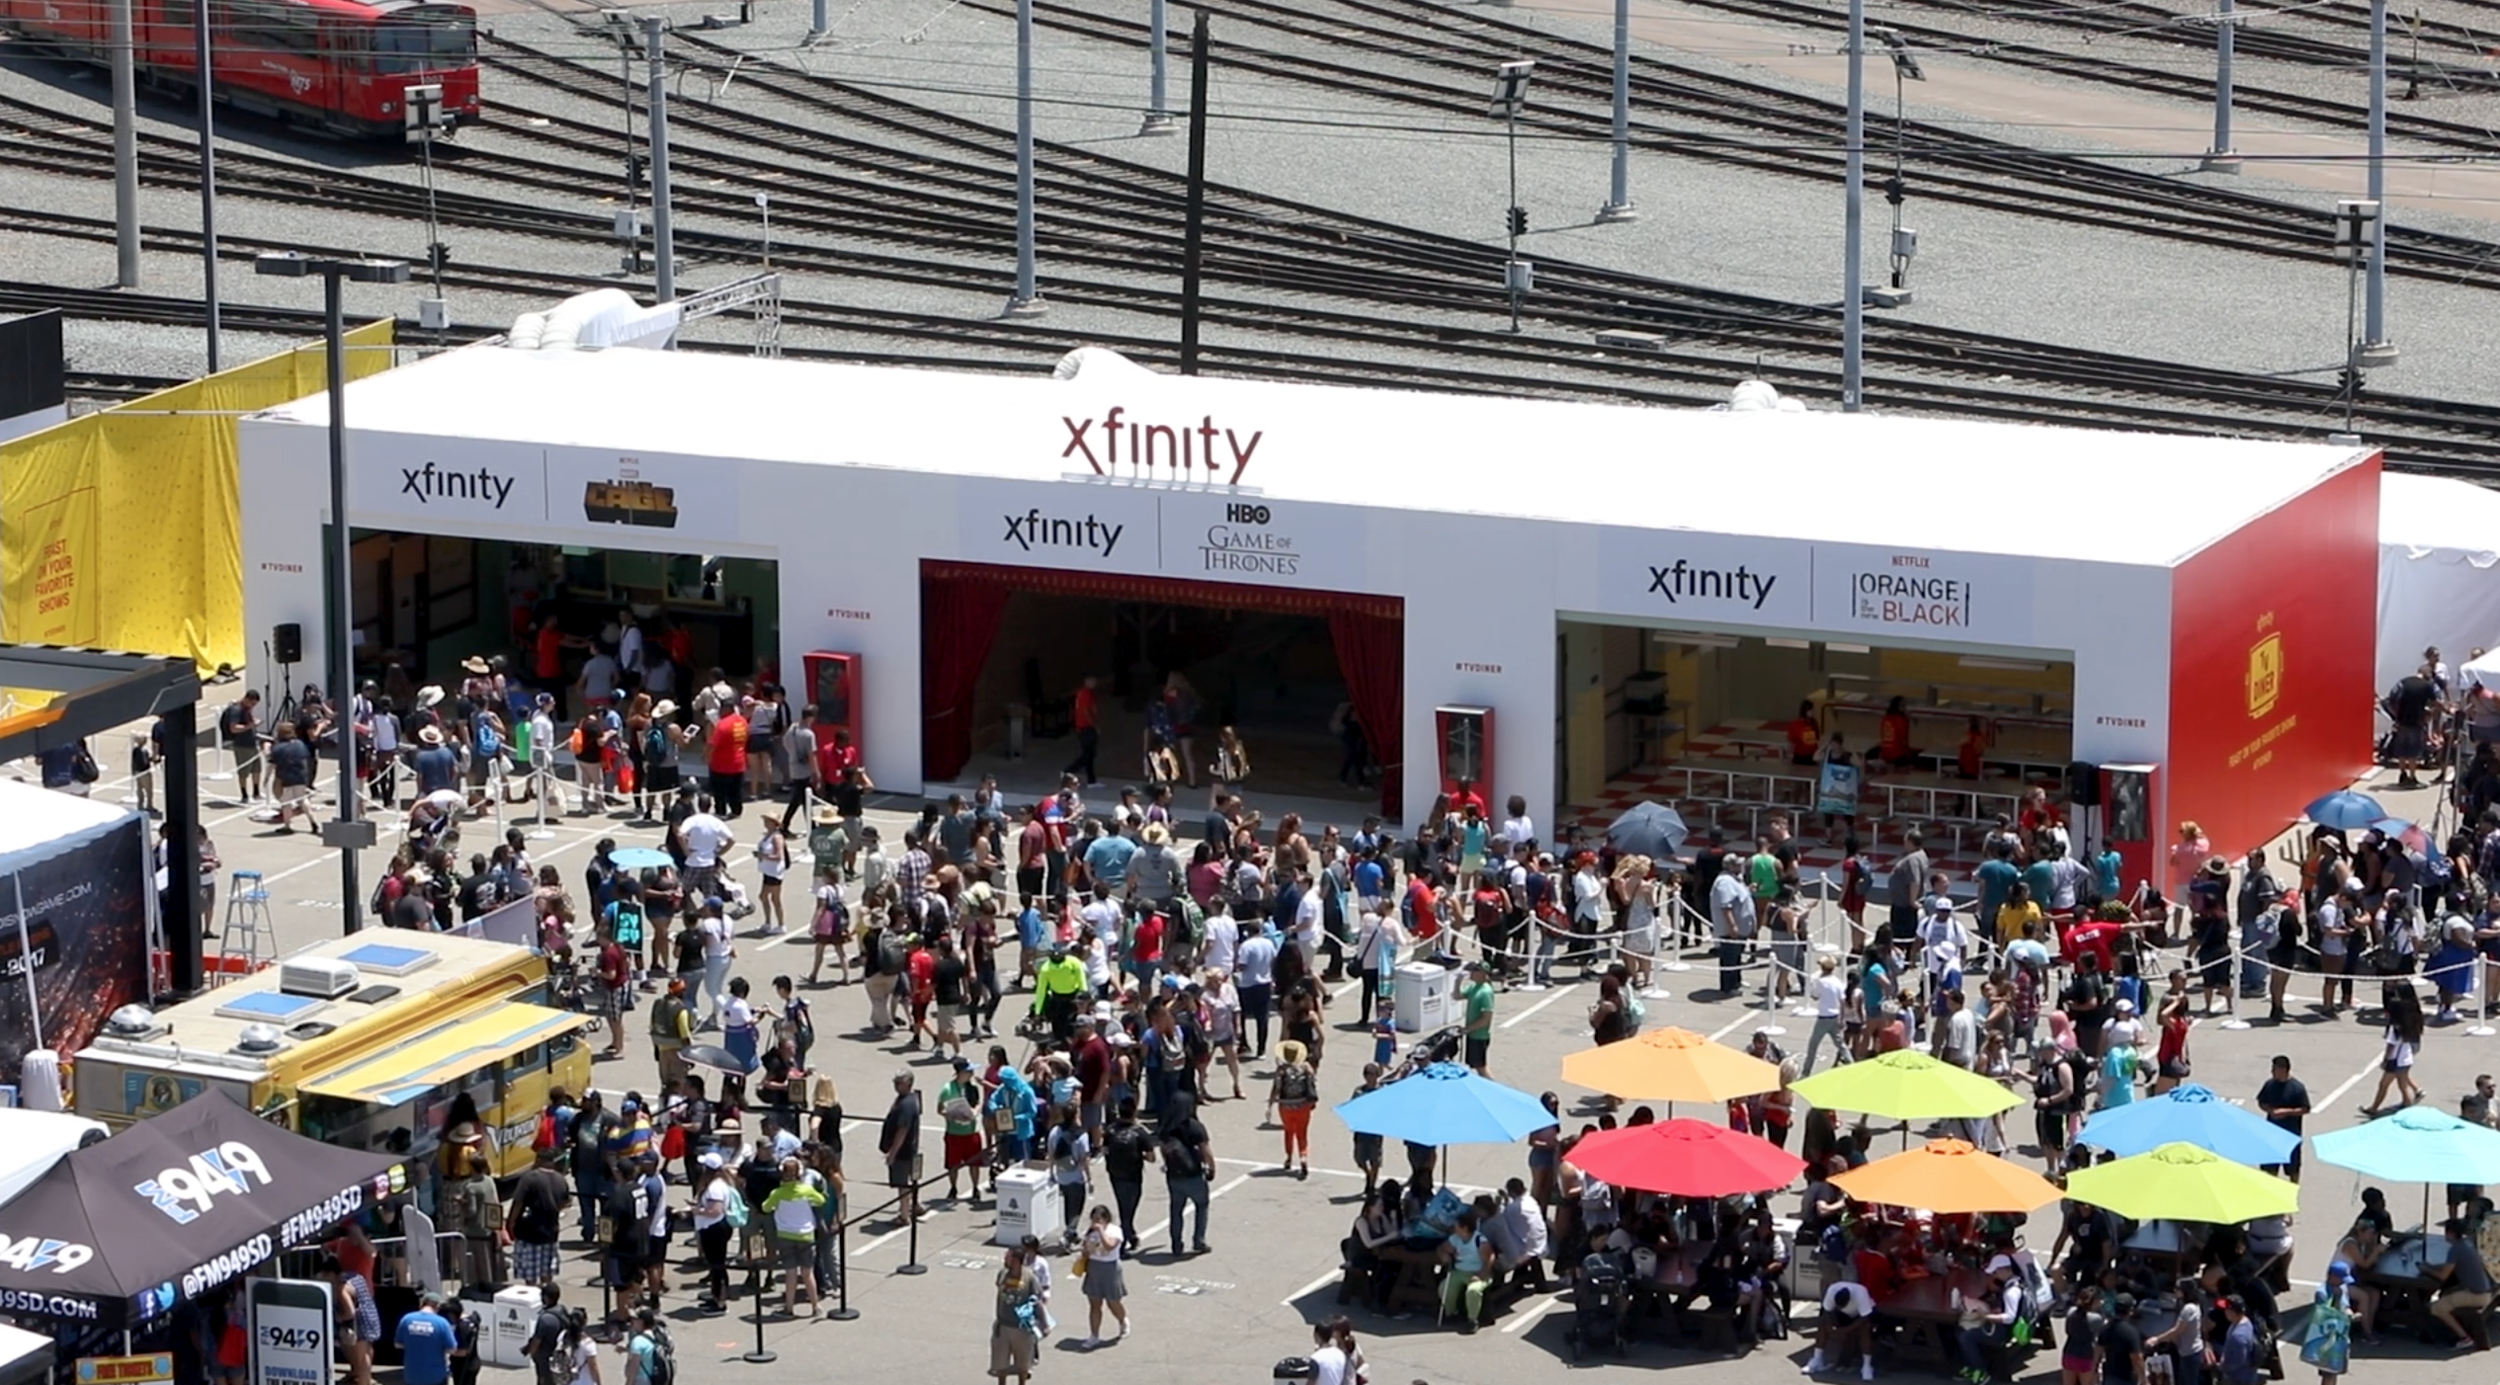 Preview Events - xfinity - San Diego comicon lines.png